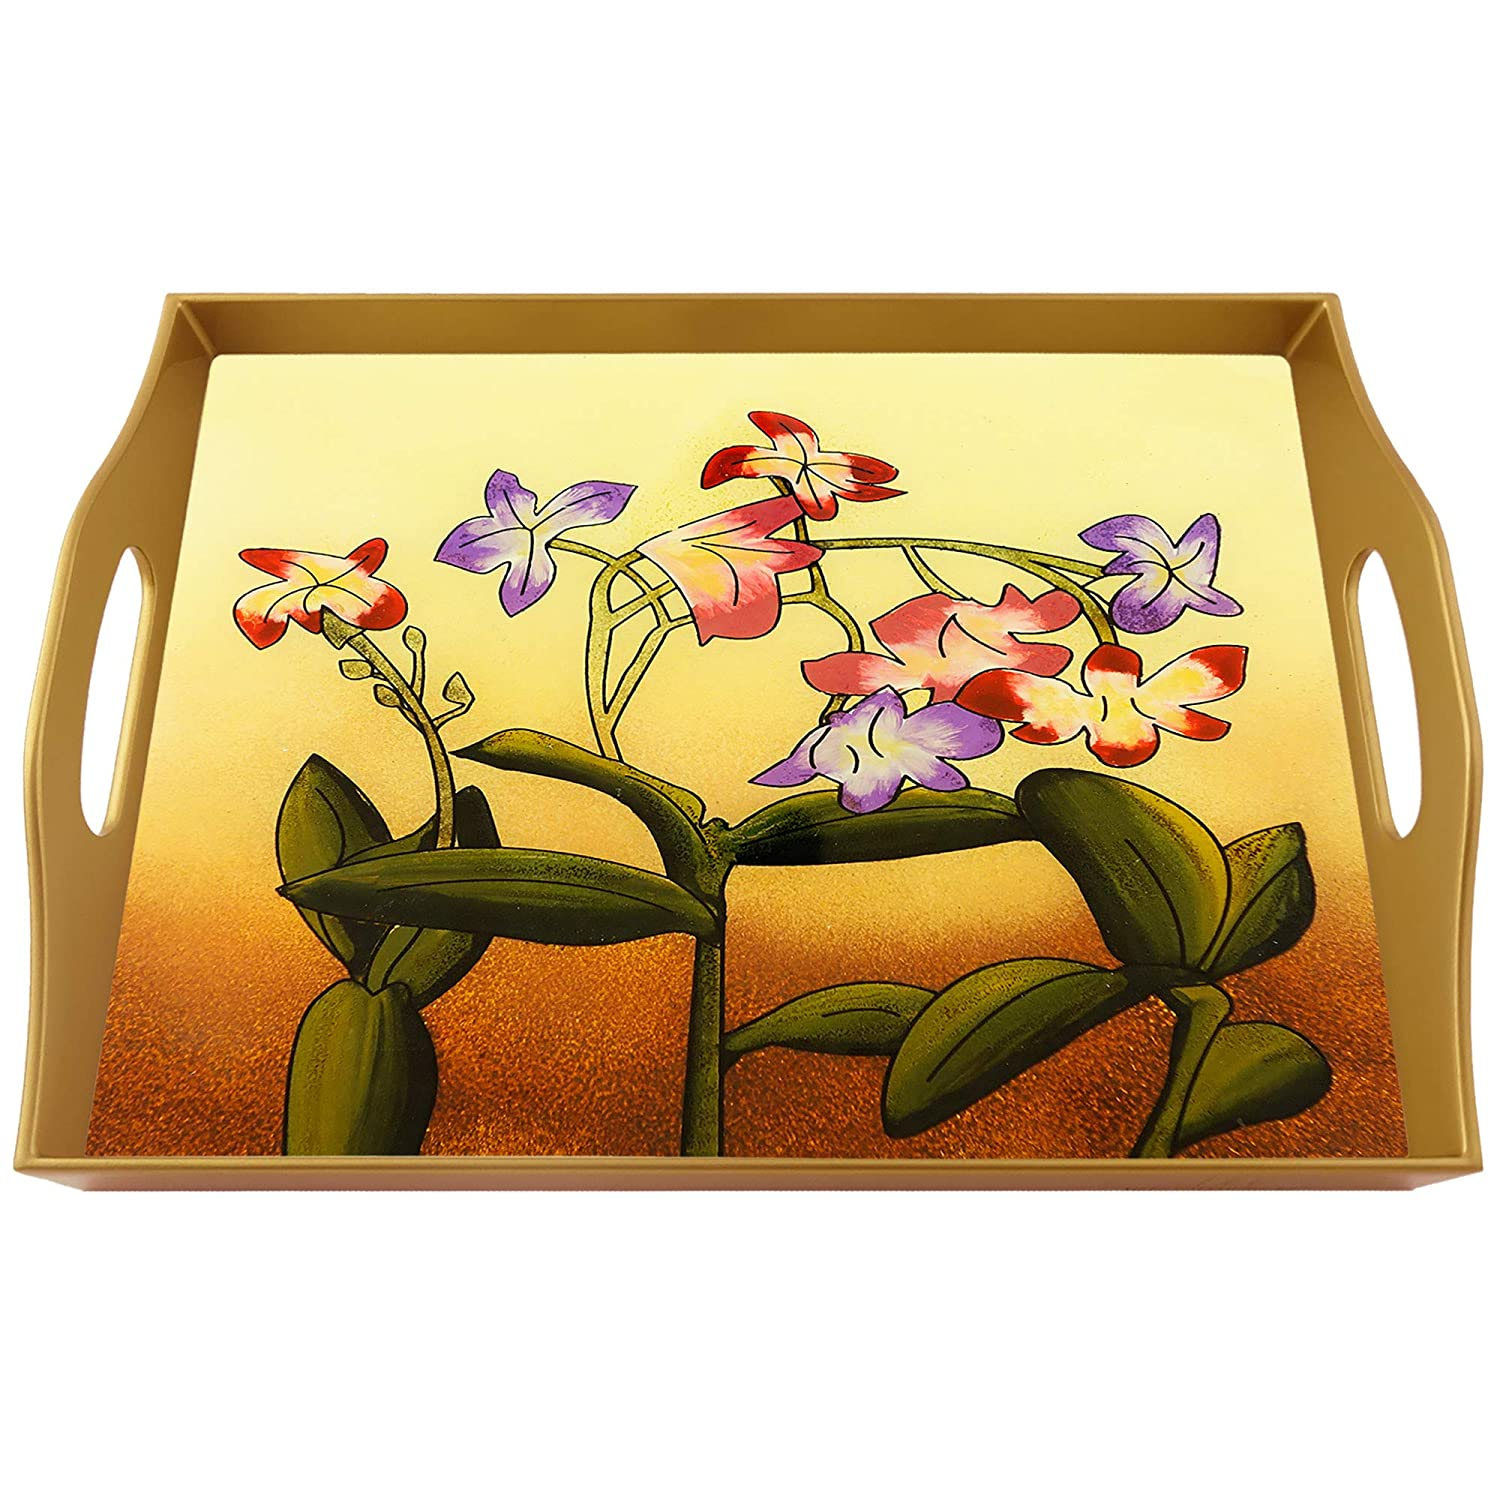 Bed tray Seasonal Wrap 4 years warranty Introduction - Vintage flowers Glass Rectangular Hand Painted Tray